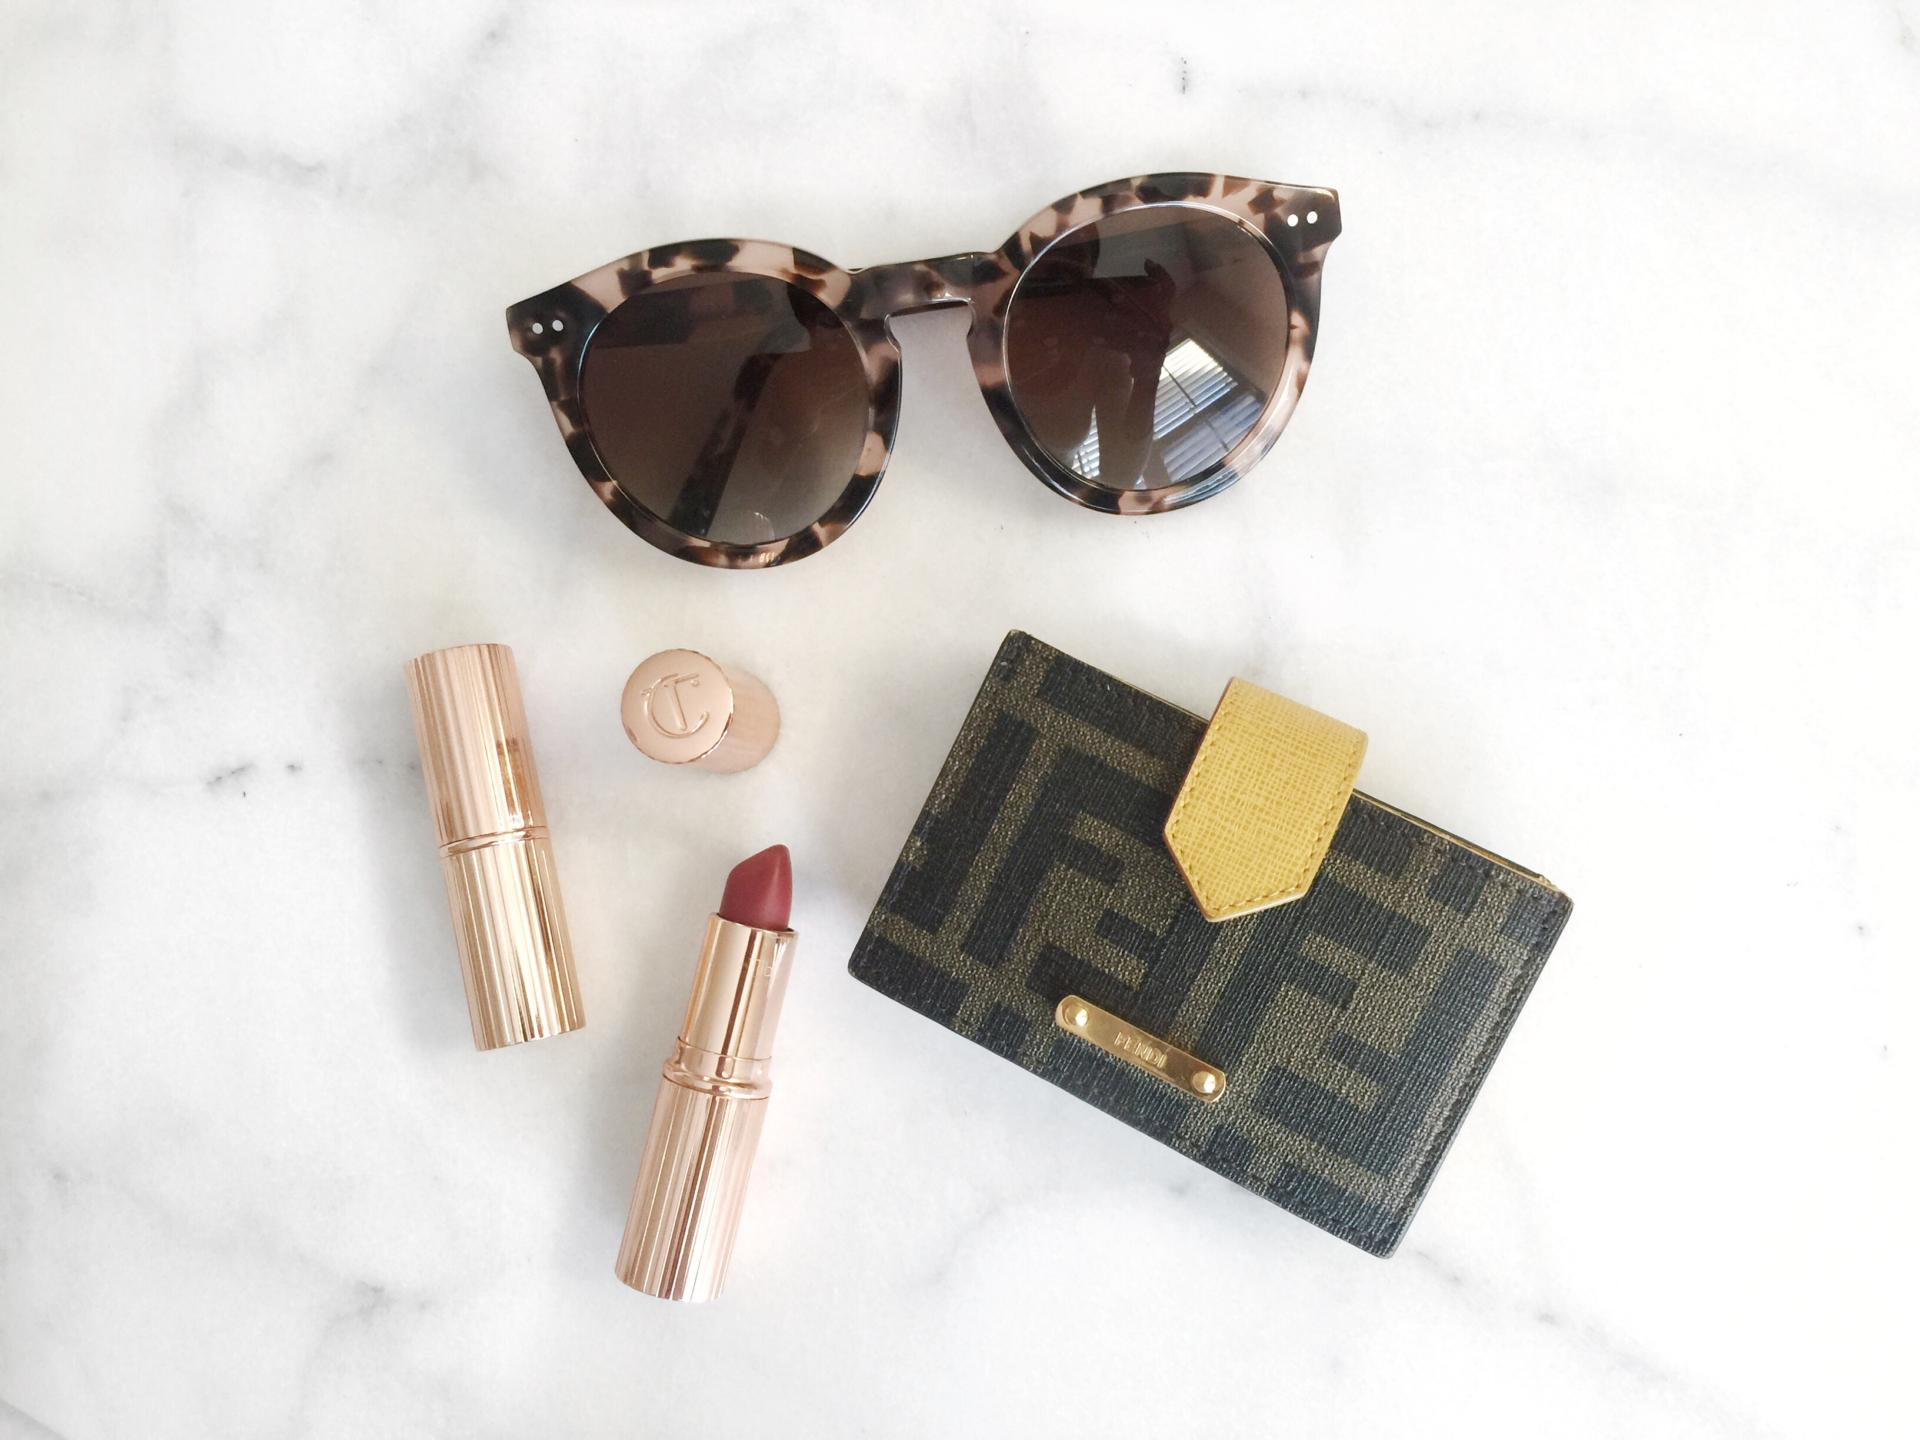 de0eb0fe16d370 Obsessing Over Luxury with Valamode - Style Domination